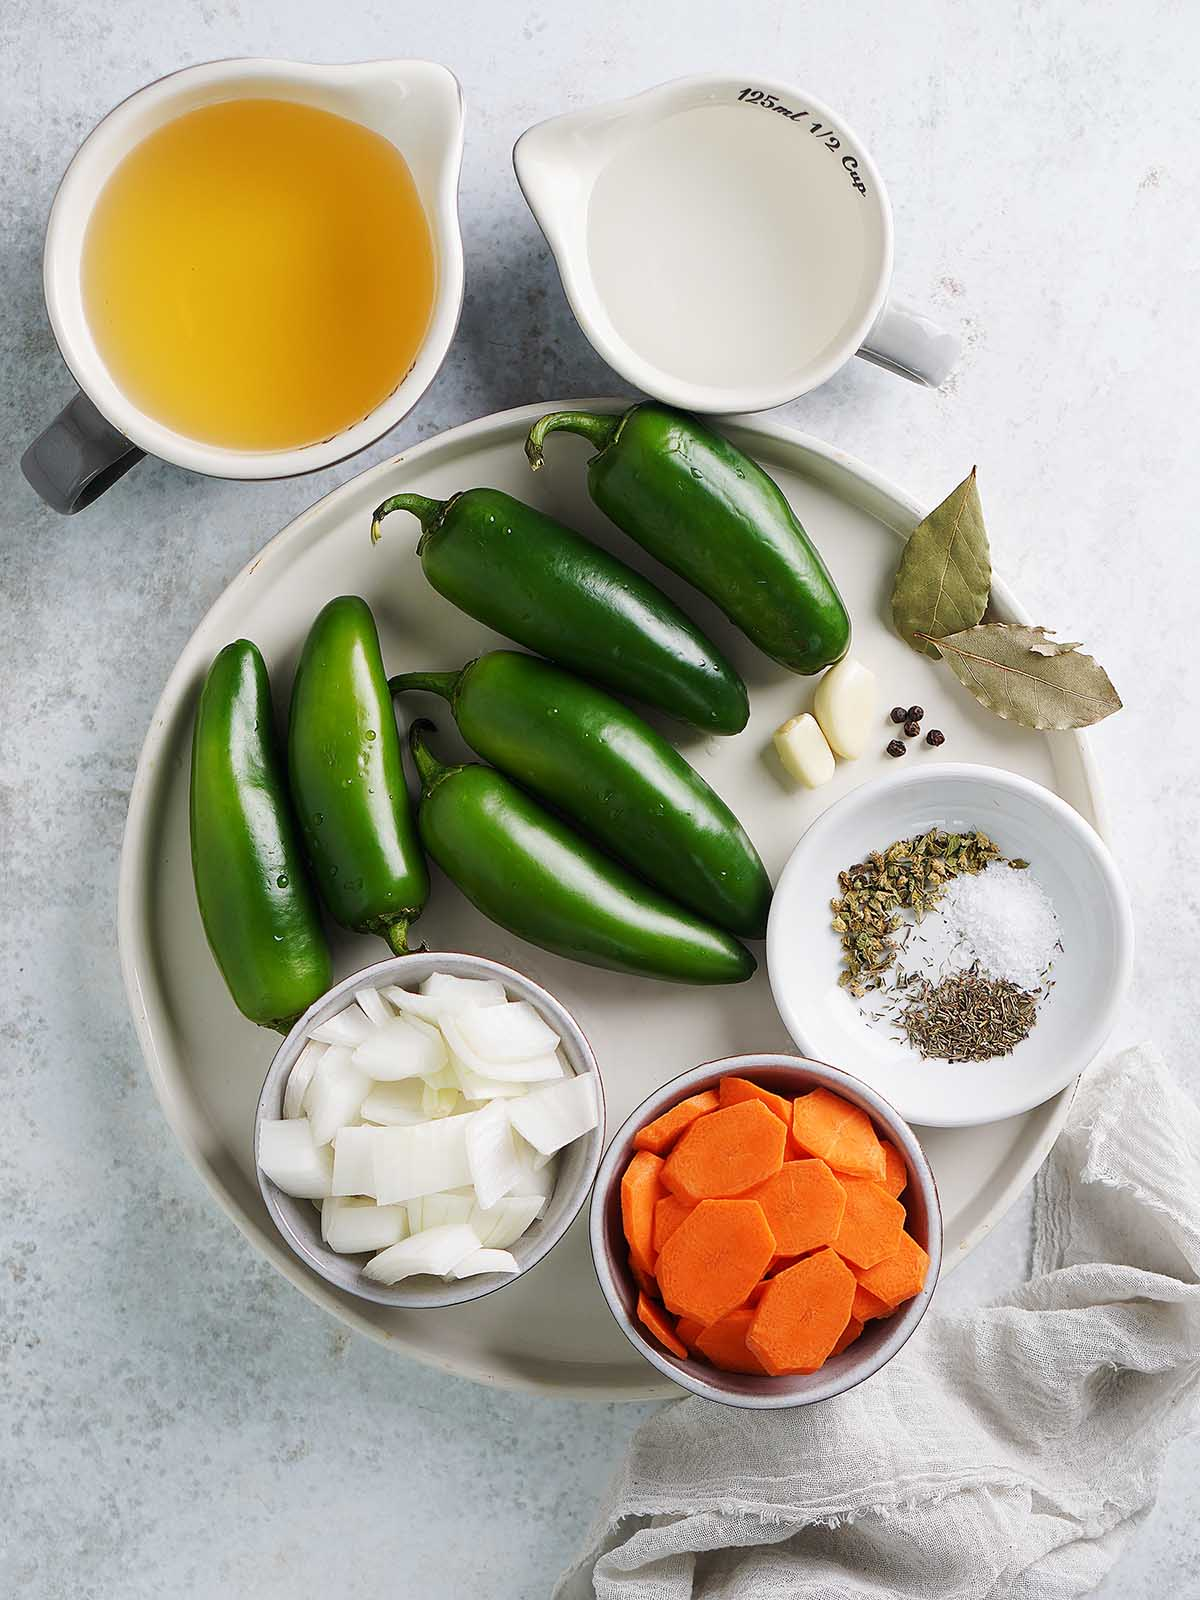 Ingredients on a white plate: jalapeños, sliced carrots, sliced onions, spices and herbs.